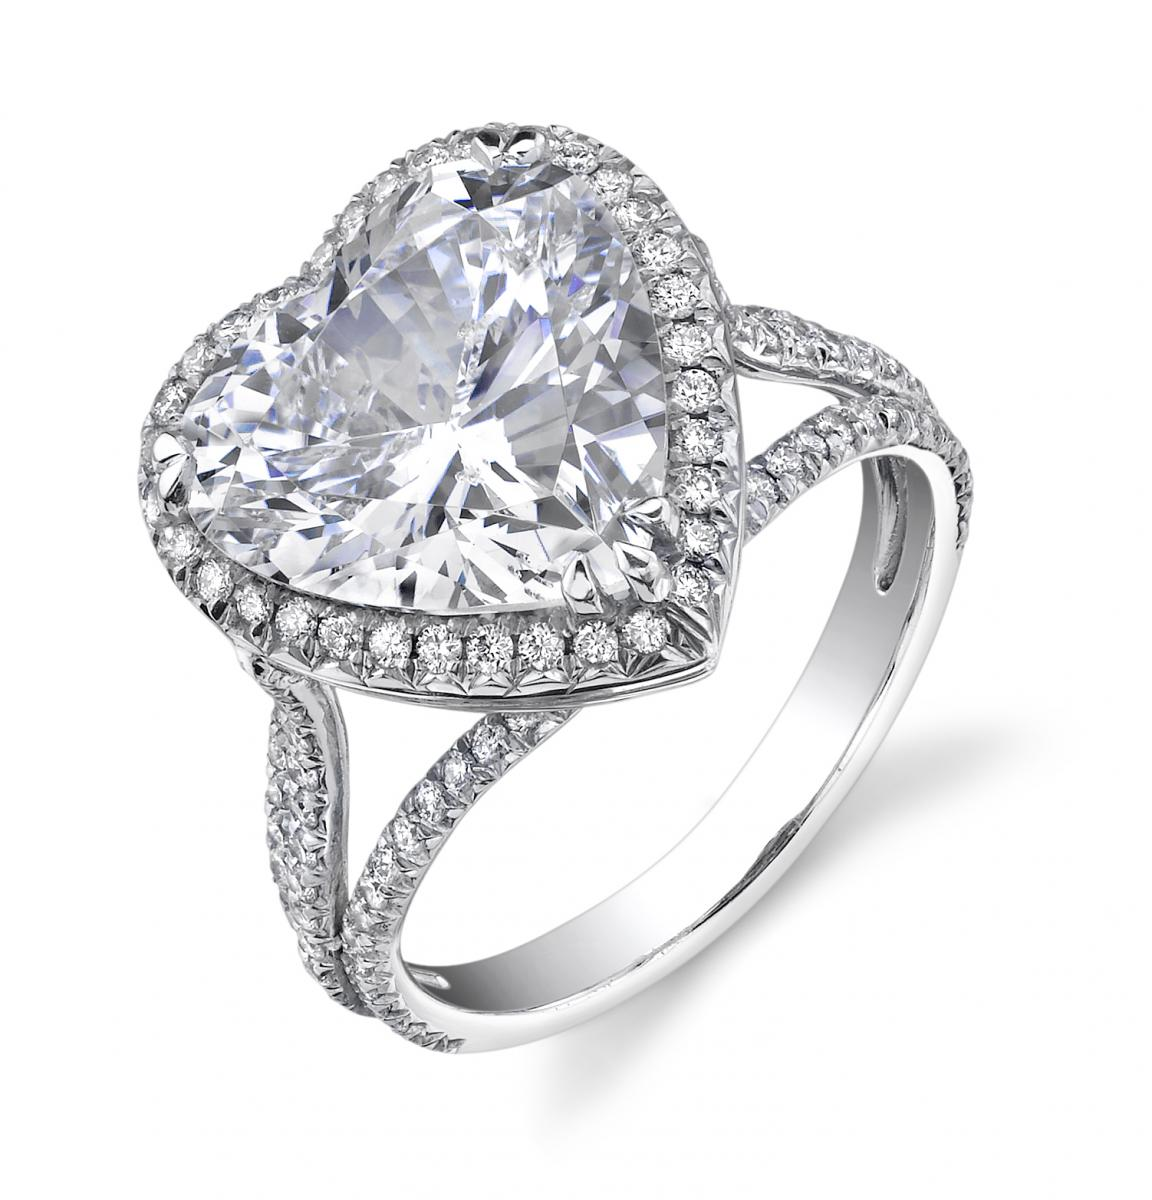 you ring your engagement does says diamonds shapes and rings what say burnettsboards com shape pin diamond about